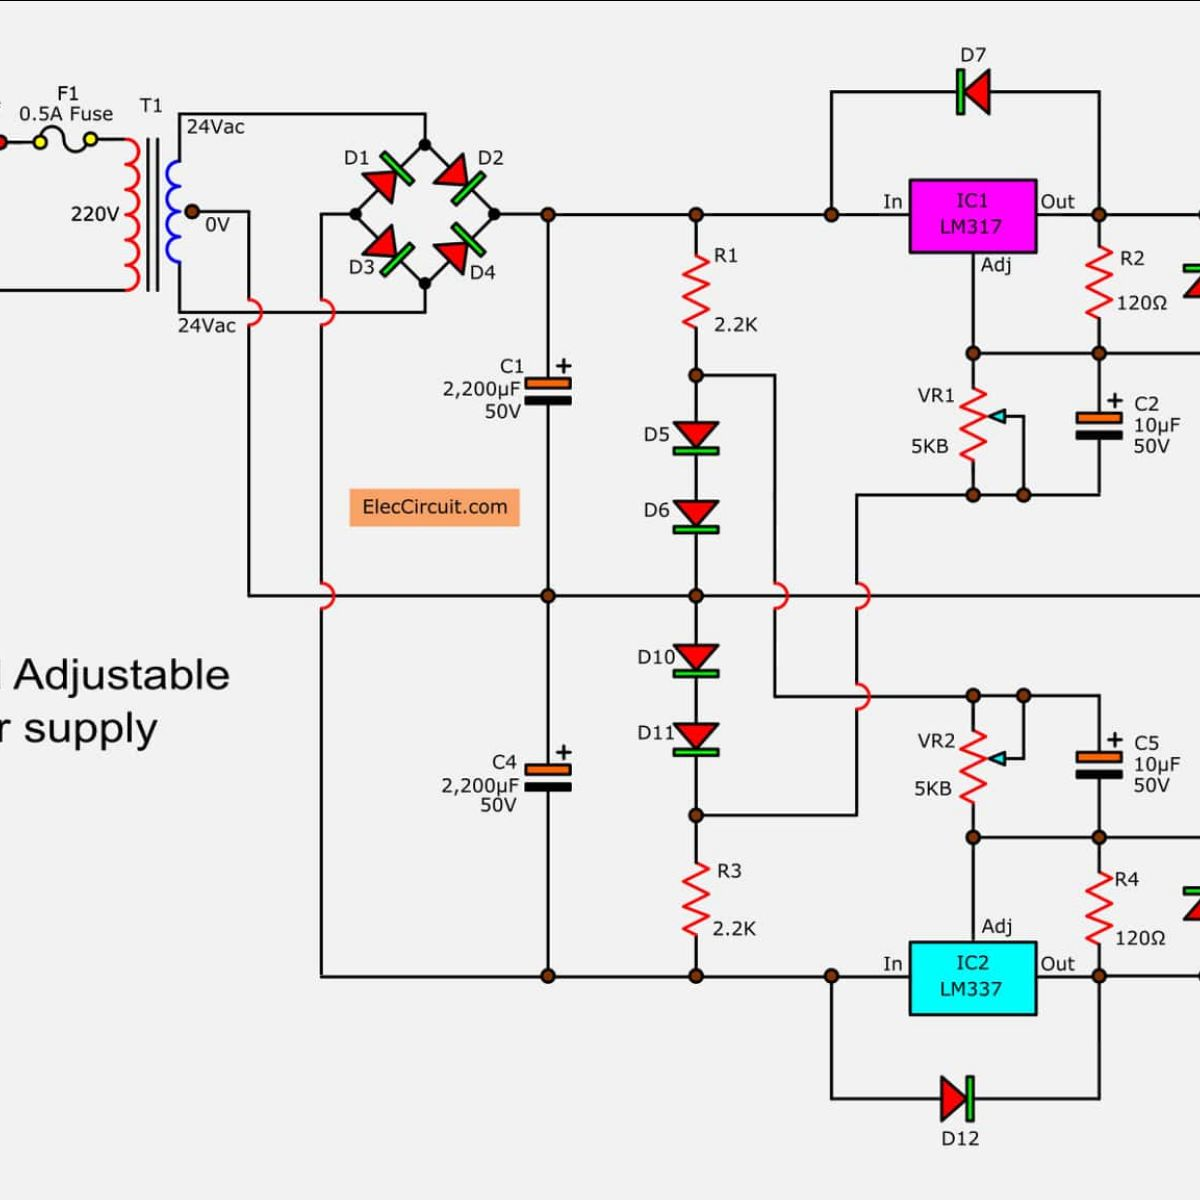 Eleccircuitcom Eleccircuits Twitter Circuits Lm3909 Led Flasher Simple 555 One Transistor 0 Replies Retweets 1 Like